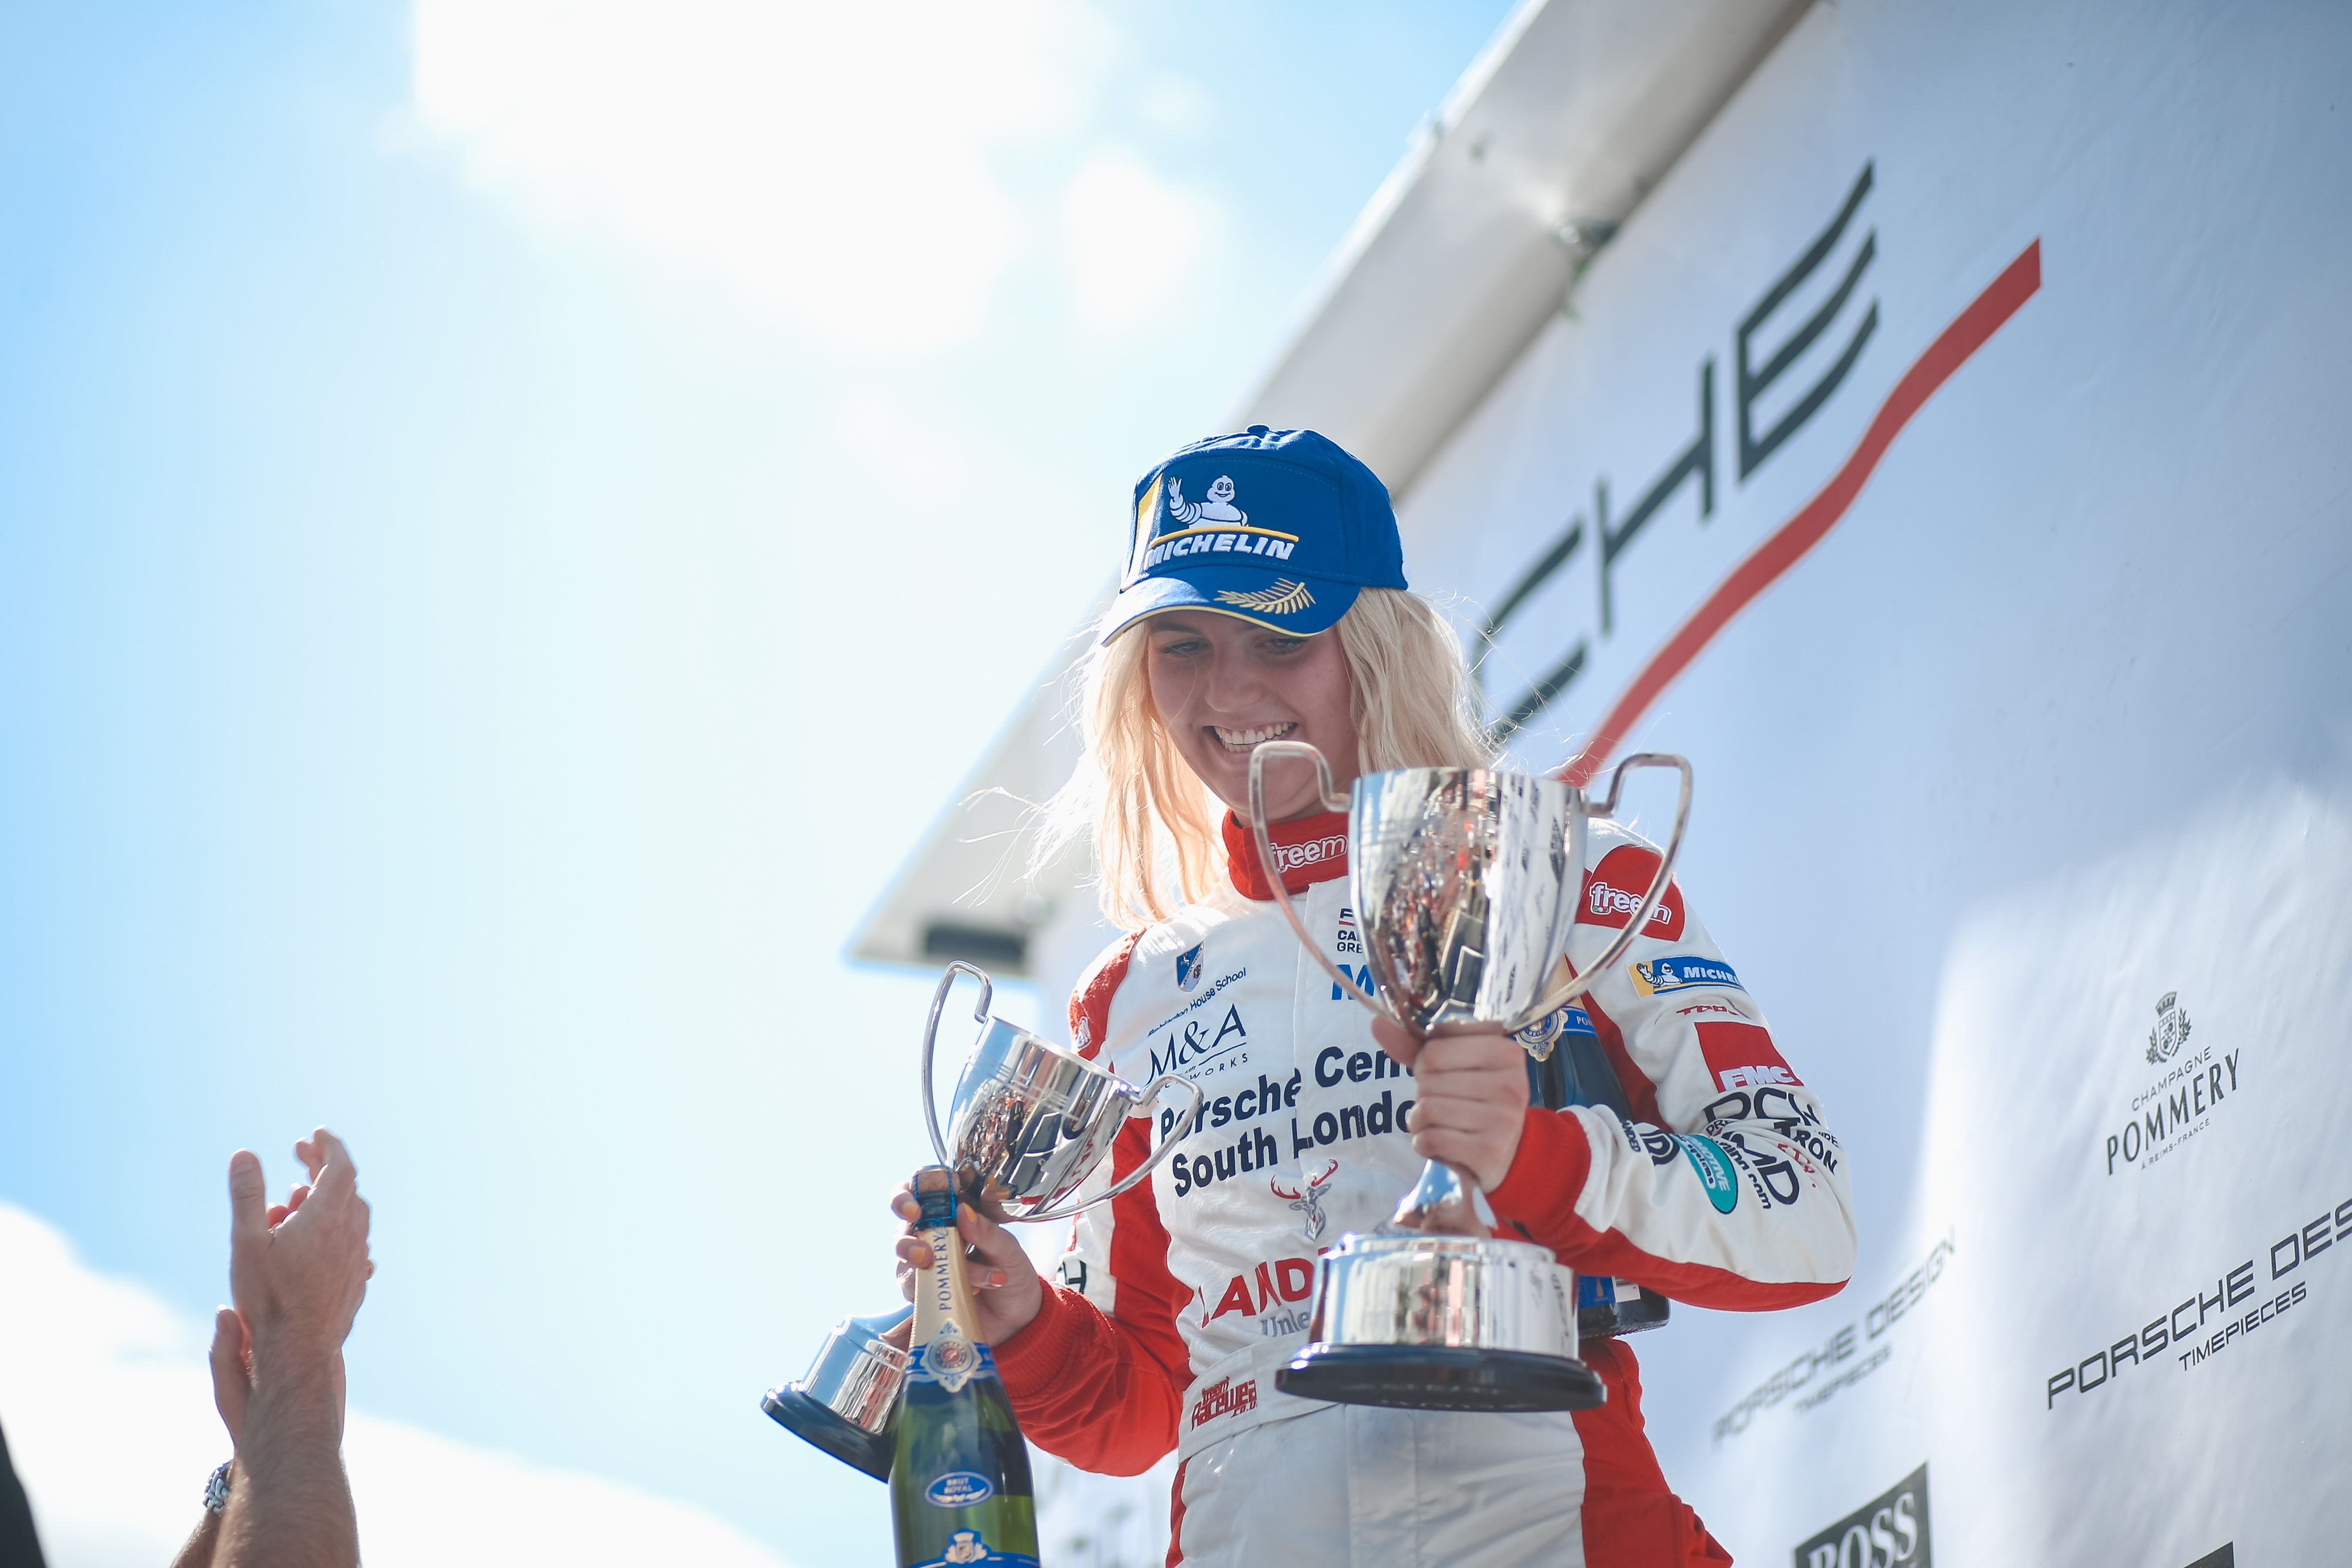 Hawkey on top of her game with Carrera Cup Victory